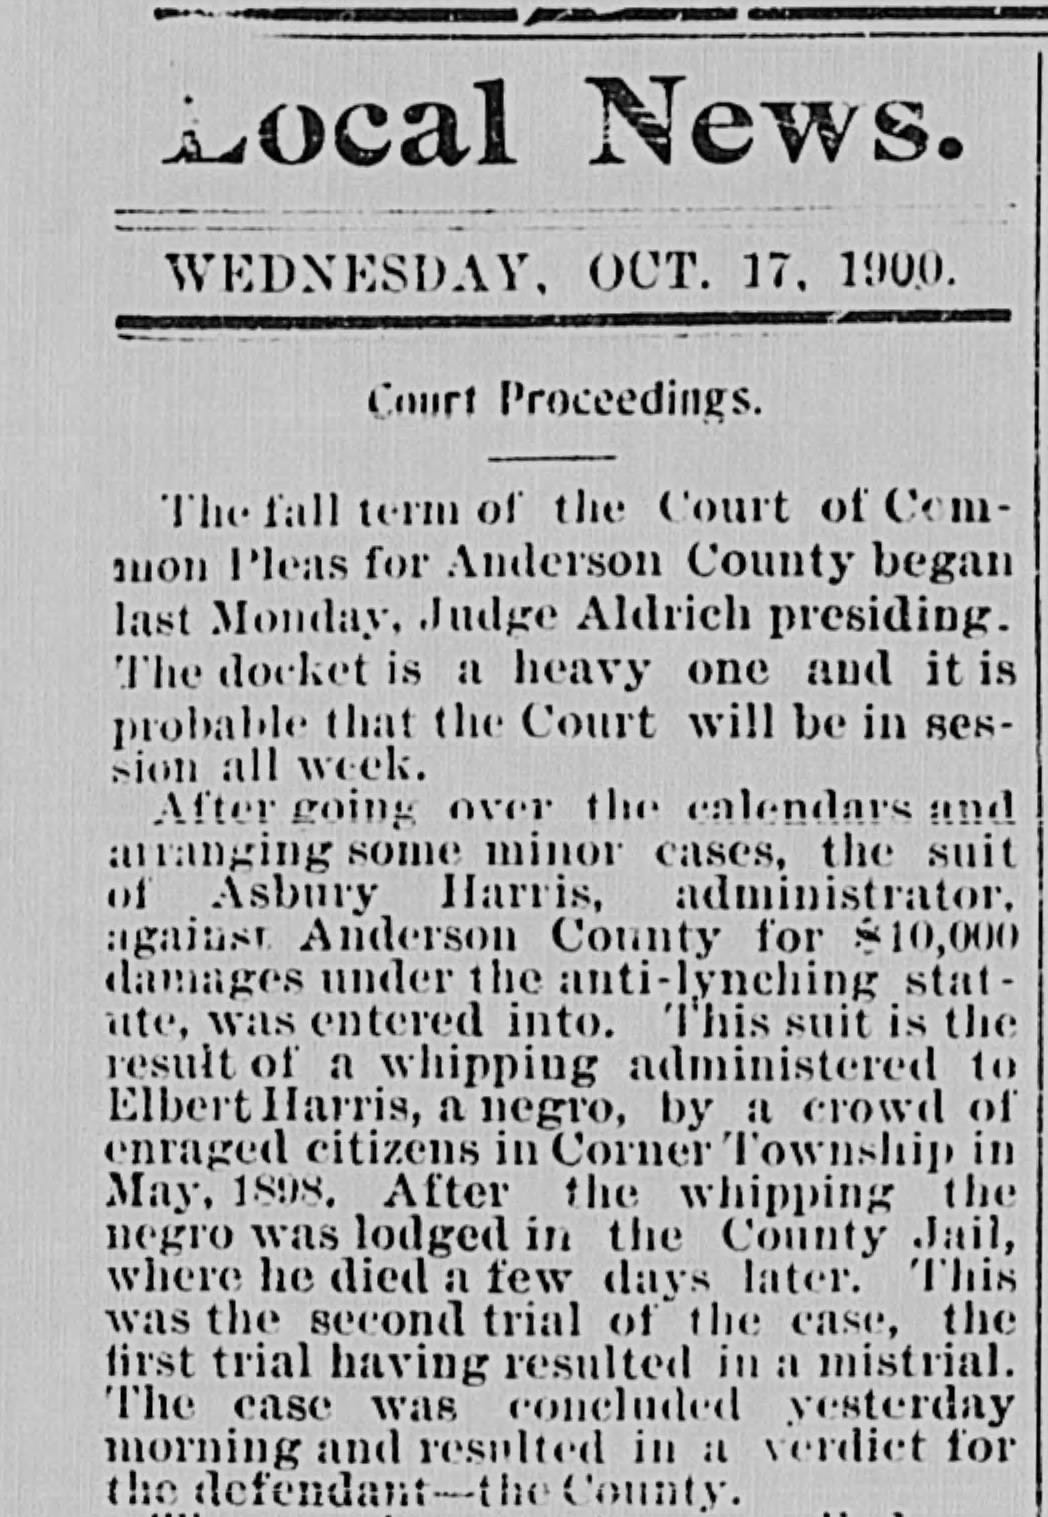 A portion of a newspaper article on the case of Elbert Harris from the Oct. 17, 1900 issue of The Intelligencer.